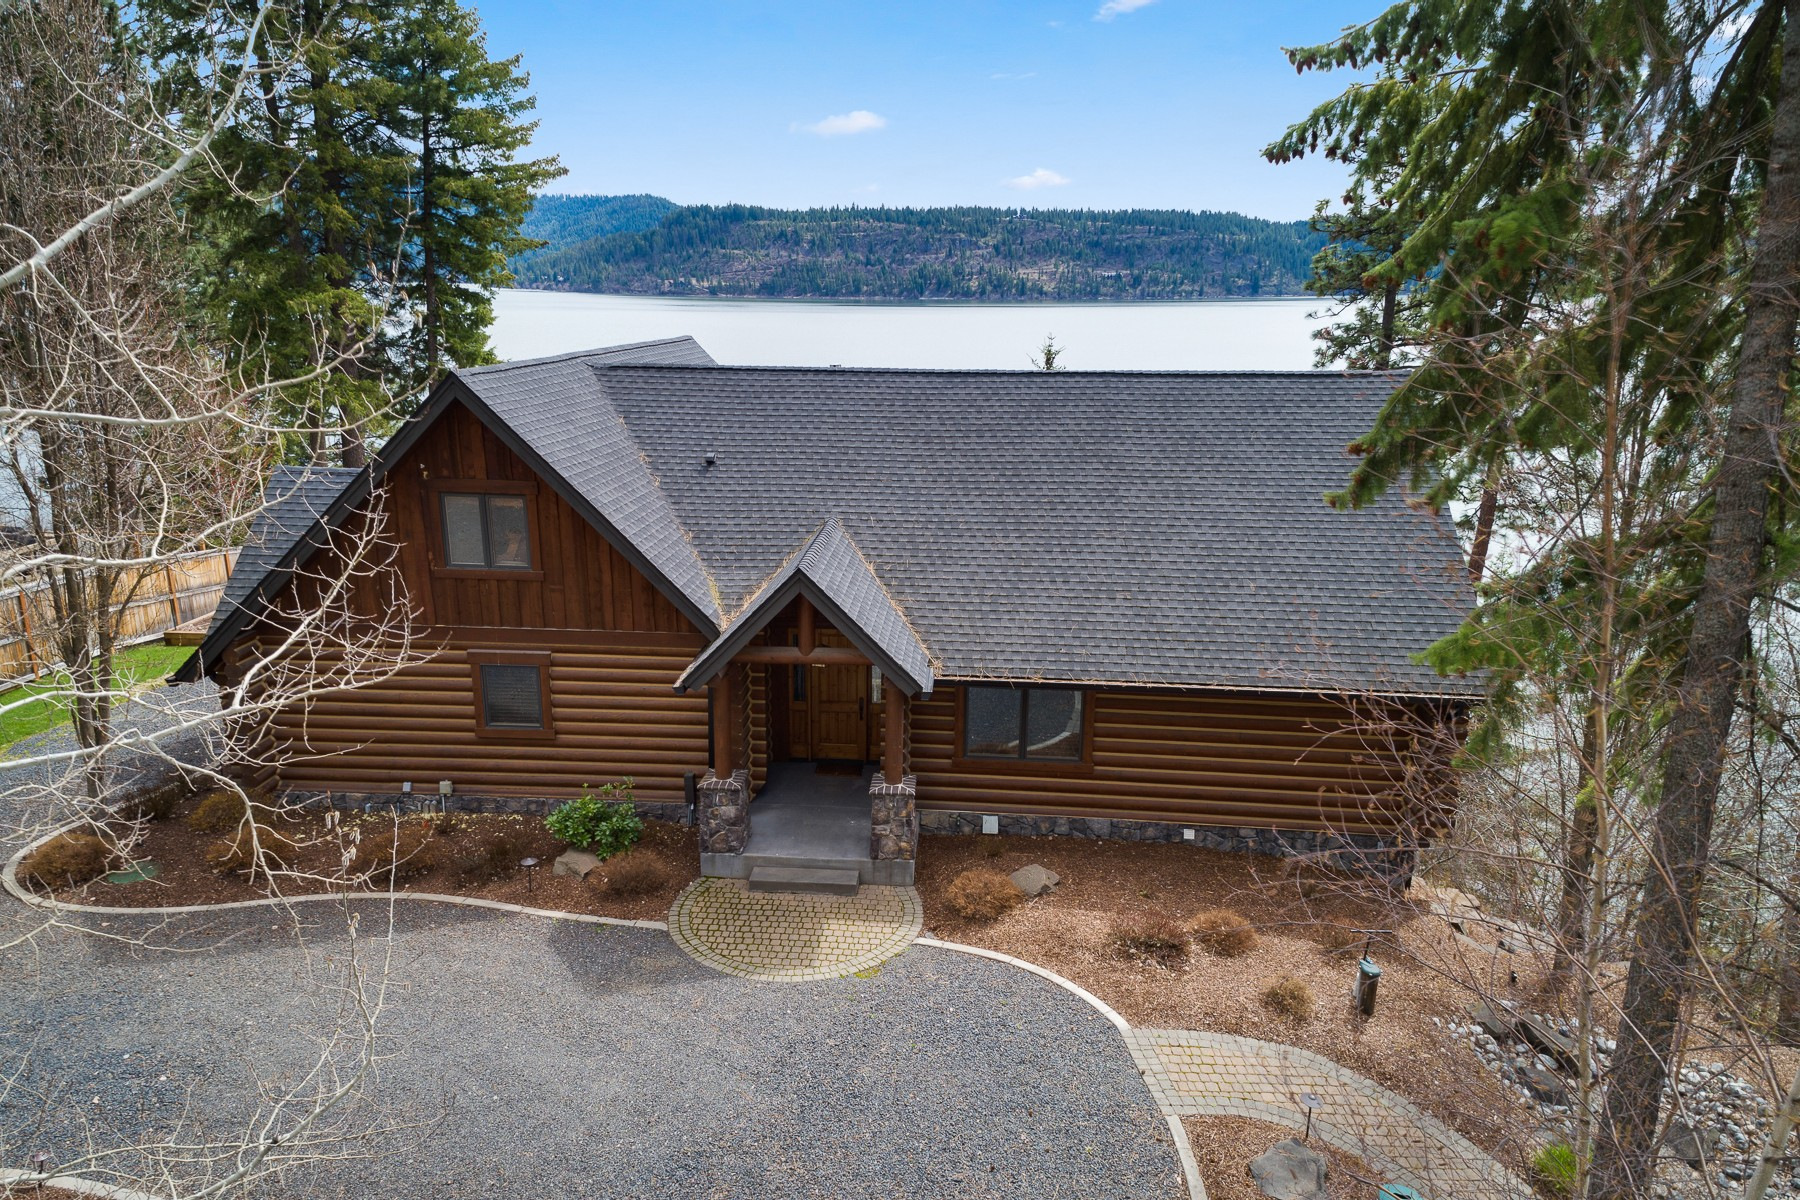 Single Family Homes for Sale at Welcome To The Lake! 6868 W Rockford Bay Road Coeur D Alene, Idaho 83814 United States